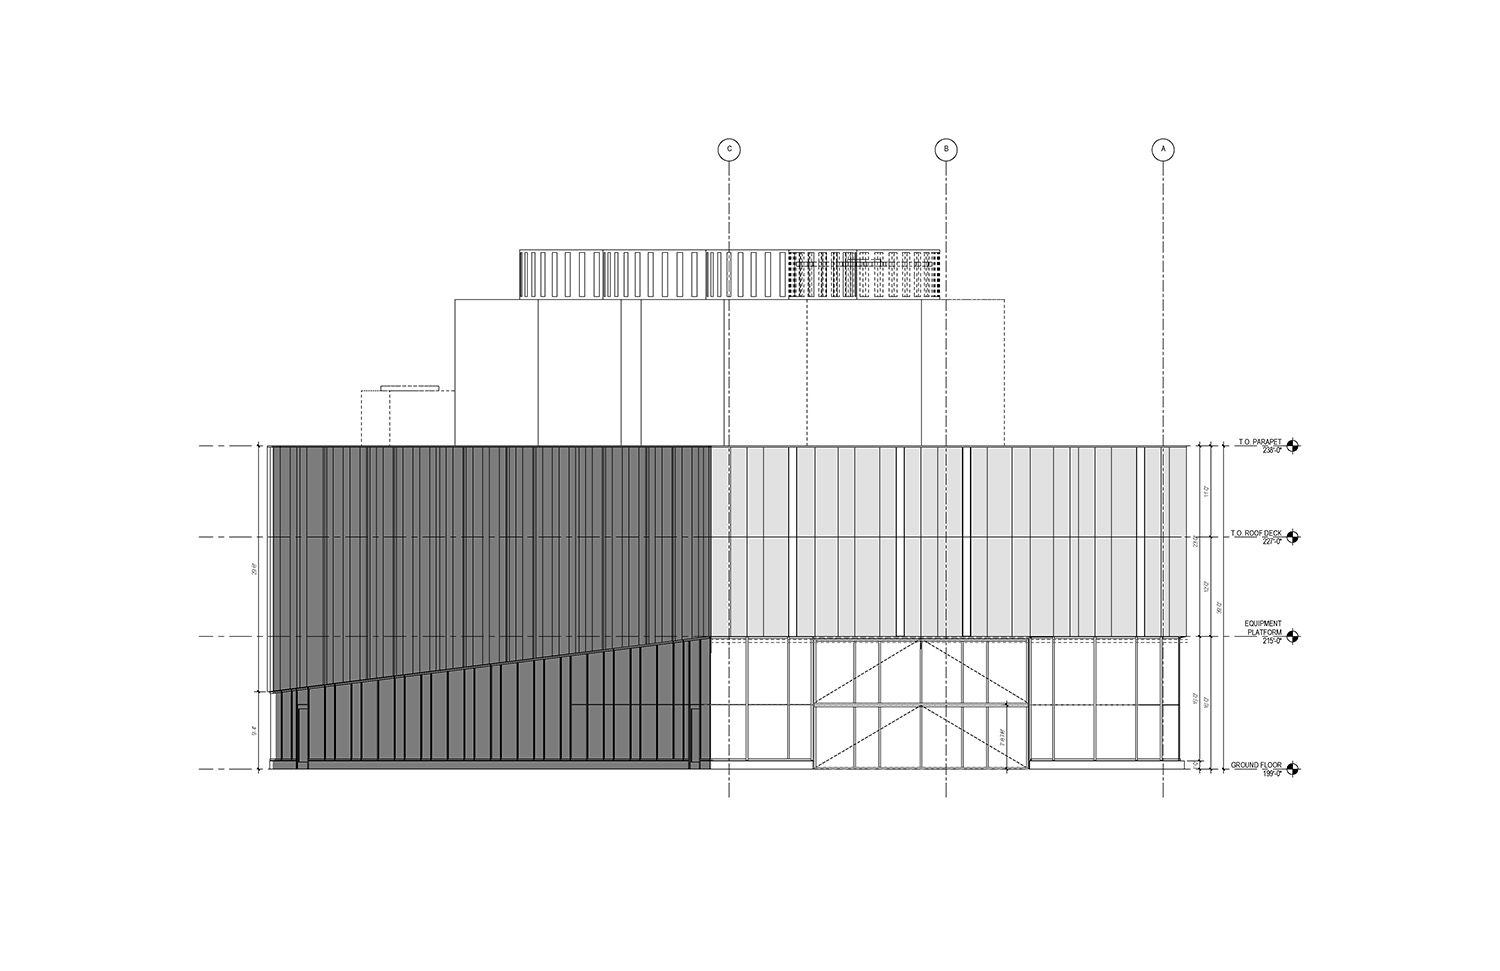 North Elevation of the UMass Amherst North Chiller Plant Leers Weinzapfel Associates}